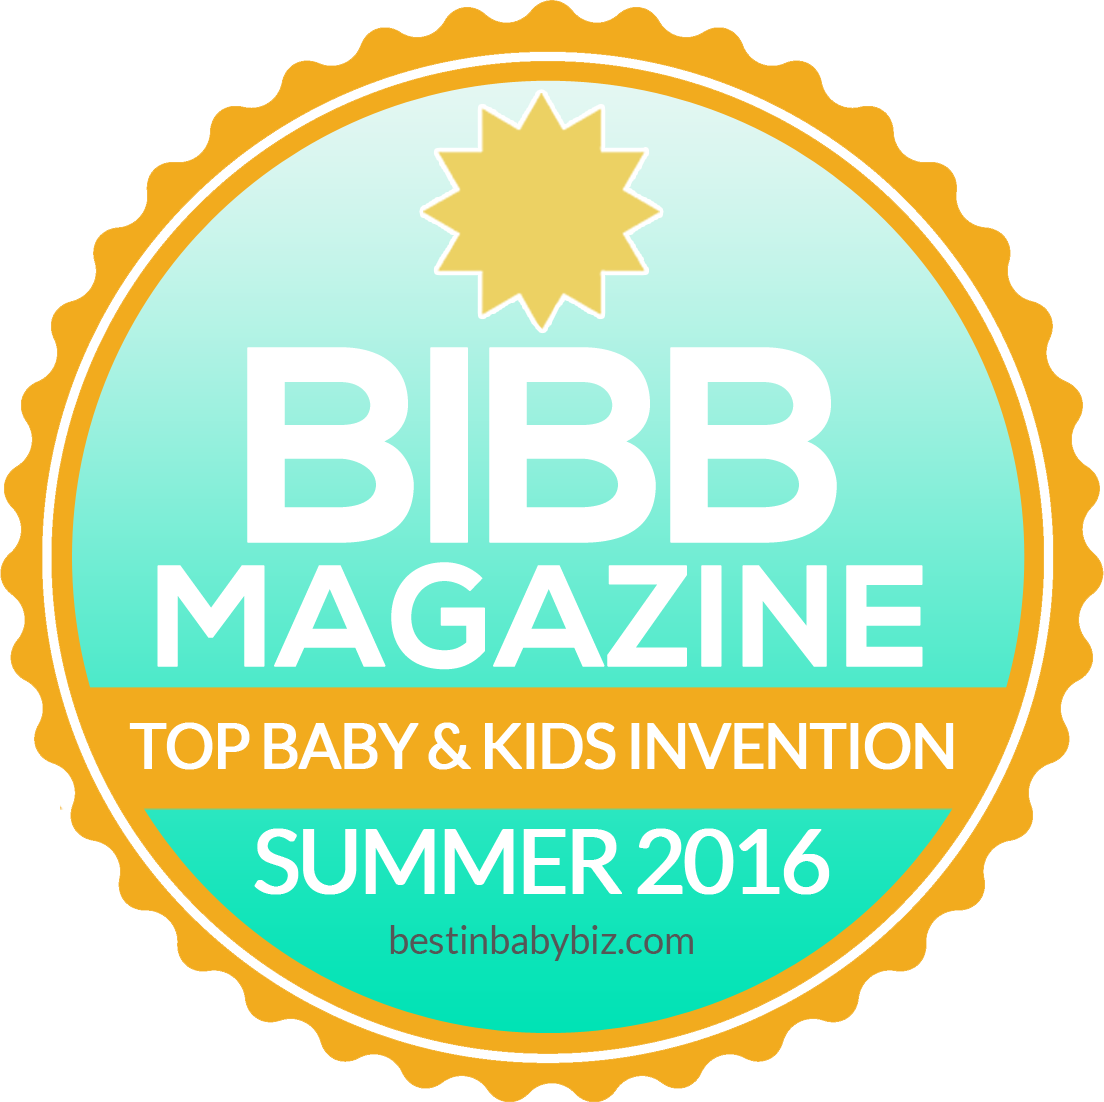 bibb-summer-2016-award-seal.png